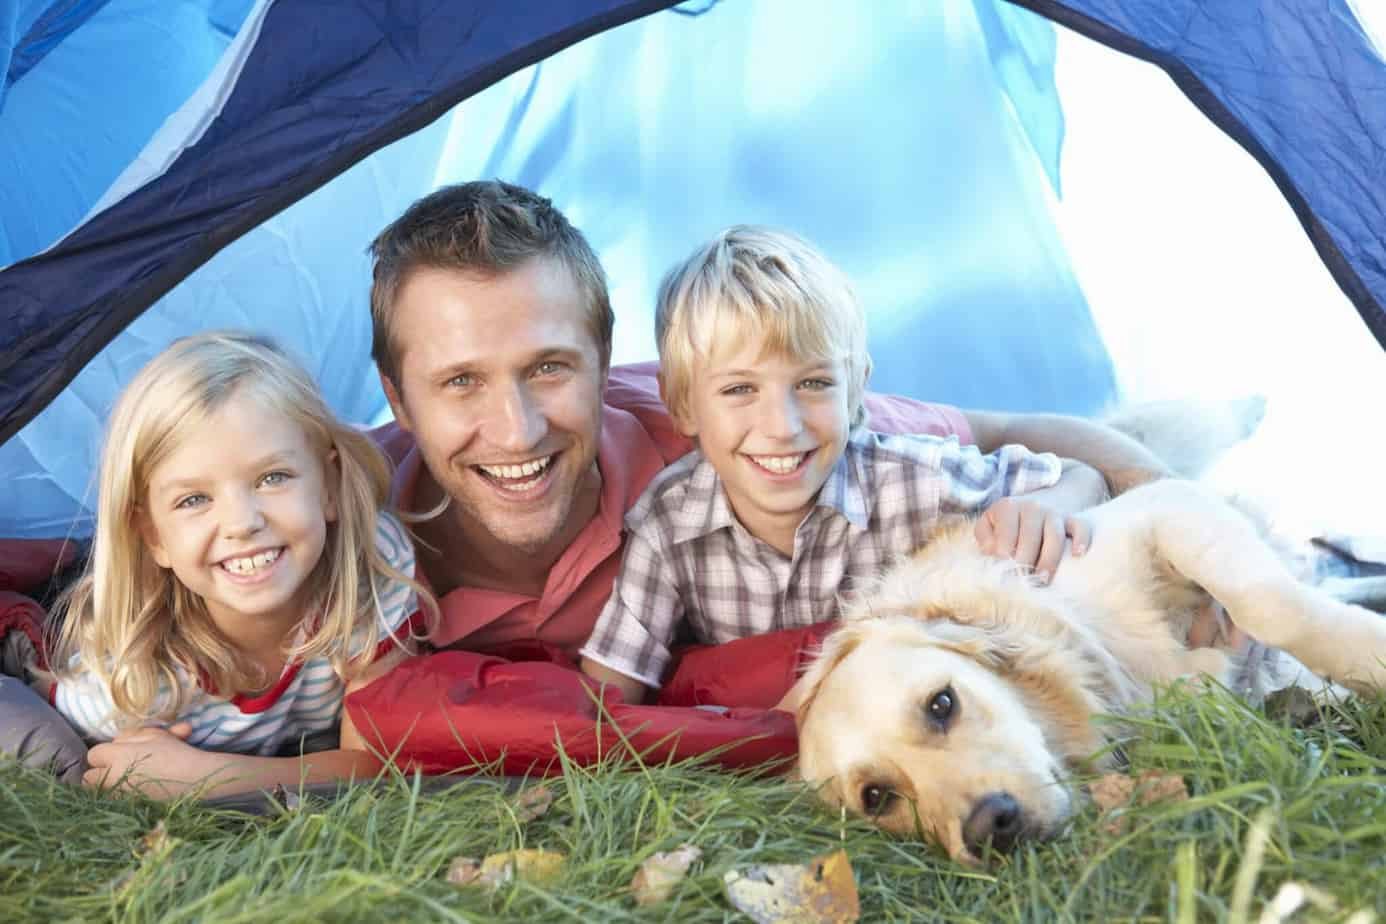 Christmas In July Camping Ideas.Taking The Kids Camping 11 Genius Tips For Camping With